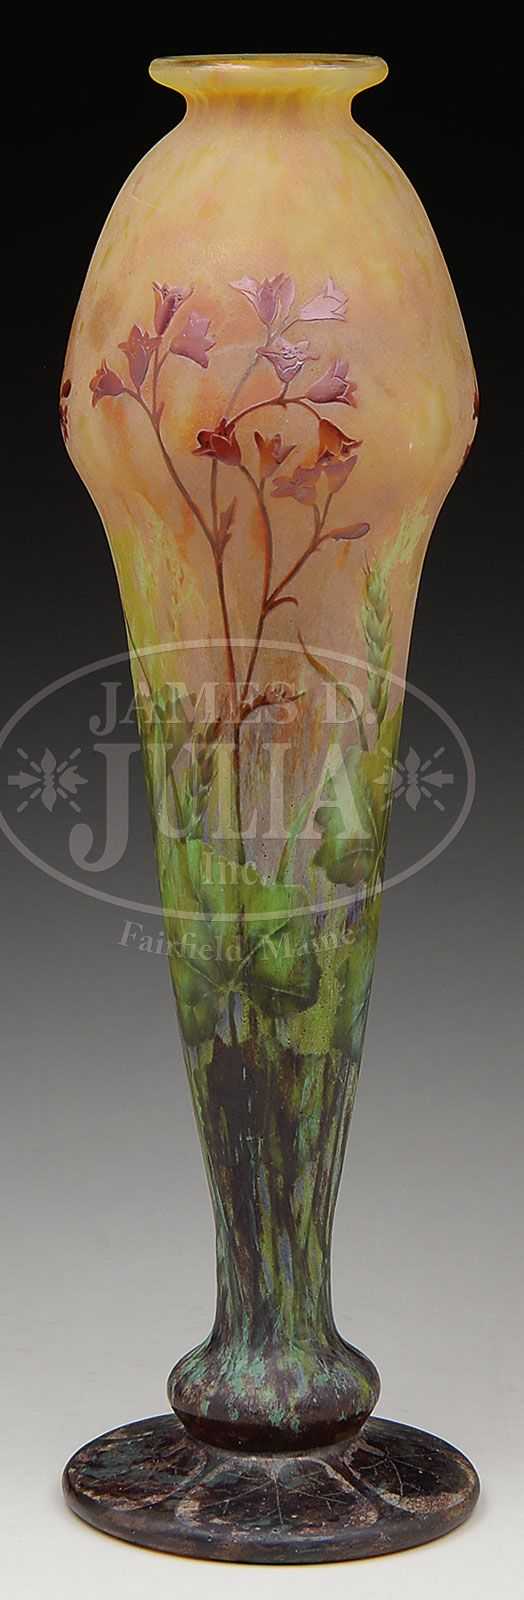 "DAUM CAMEO AND ENAMELED VASE. Daum vase has a round foot with brown cameo lily pads surrounding the top. The vase is further decorated with vitrified cameo glass stems and leaves surrounding the bottom half of the vase in shades of green and brown. Slender stems rise to support bell flowers all against a slightly mottled yellow and orange background. The stems and bell flowers are enameled in shades of red. Signed on the side in cameo ""Daum Nancy"" with Cross of Lorraine."